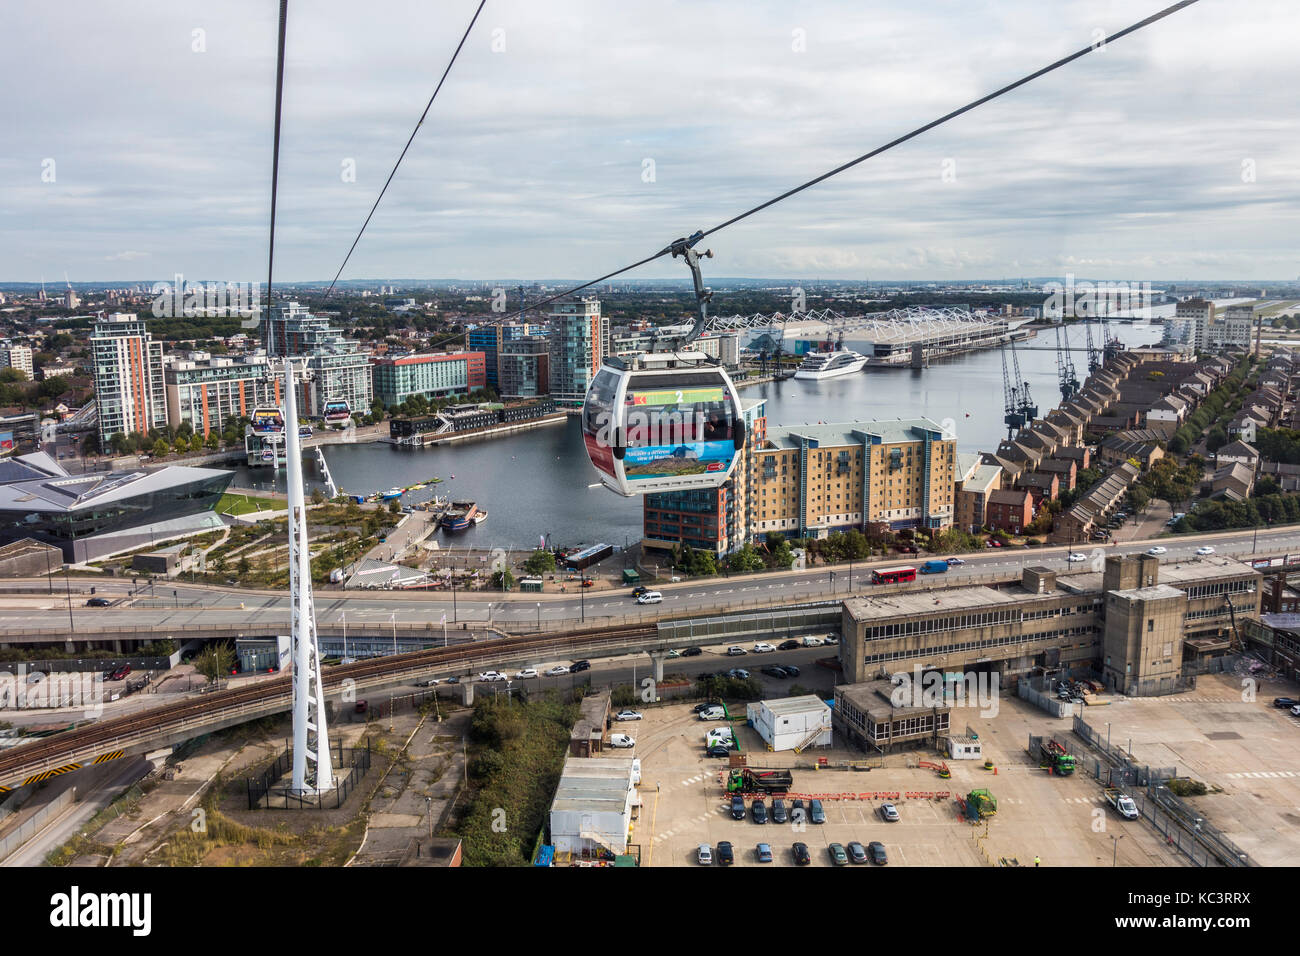 Emirates Air Line, mid-air, cable car ride across the River Thames, from Greenwich Peninsular to Royal Victoria - Stock Image